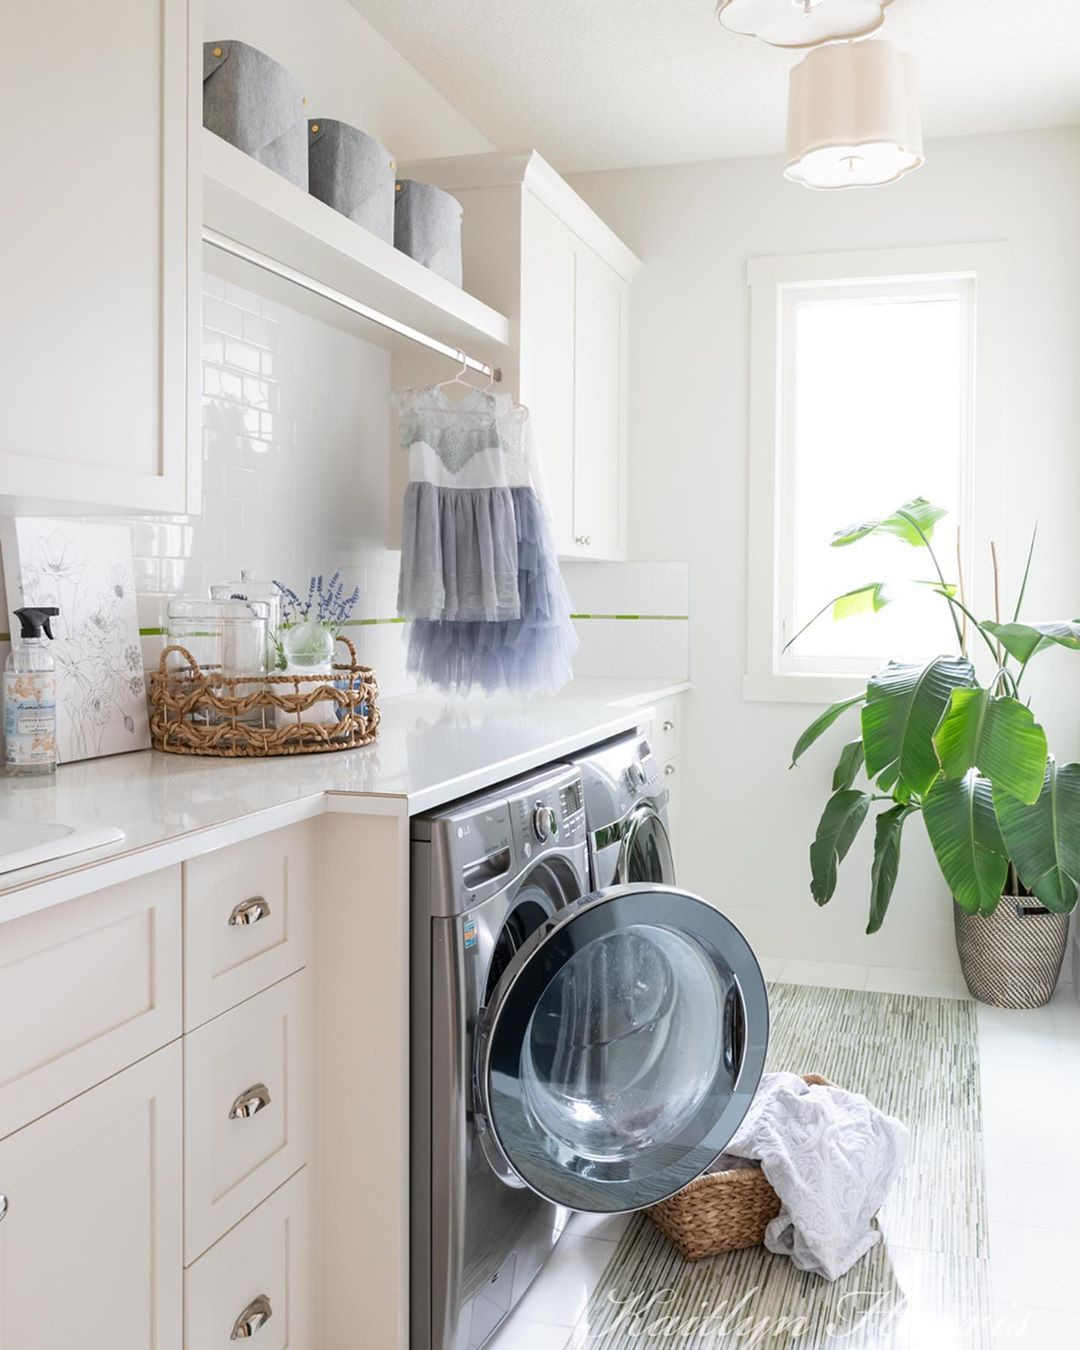 50 Clever Laundry Room Ideas That Are Practical and Space,very small laundry room ideas,laundry room ideas pinterest,laundry room ideas ikea